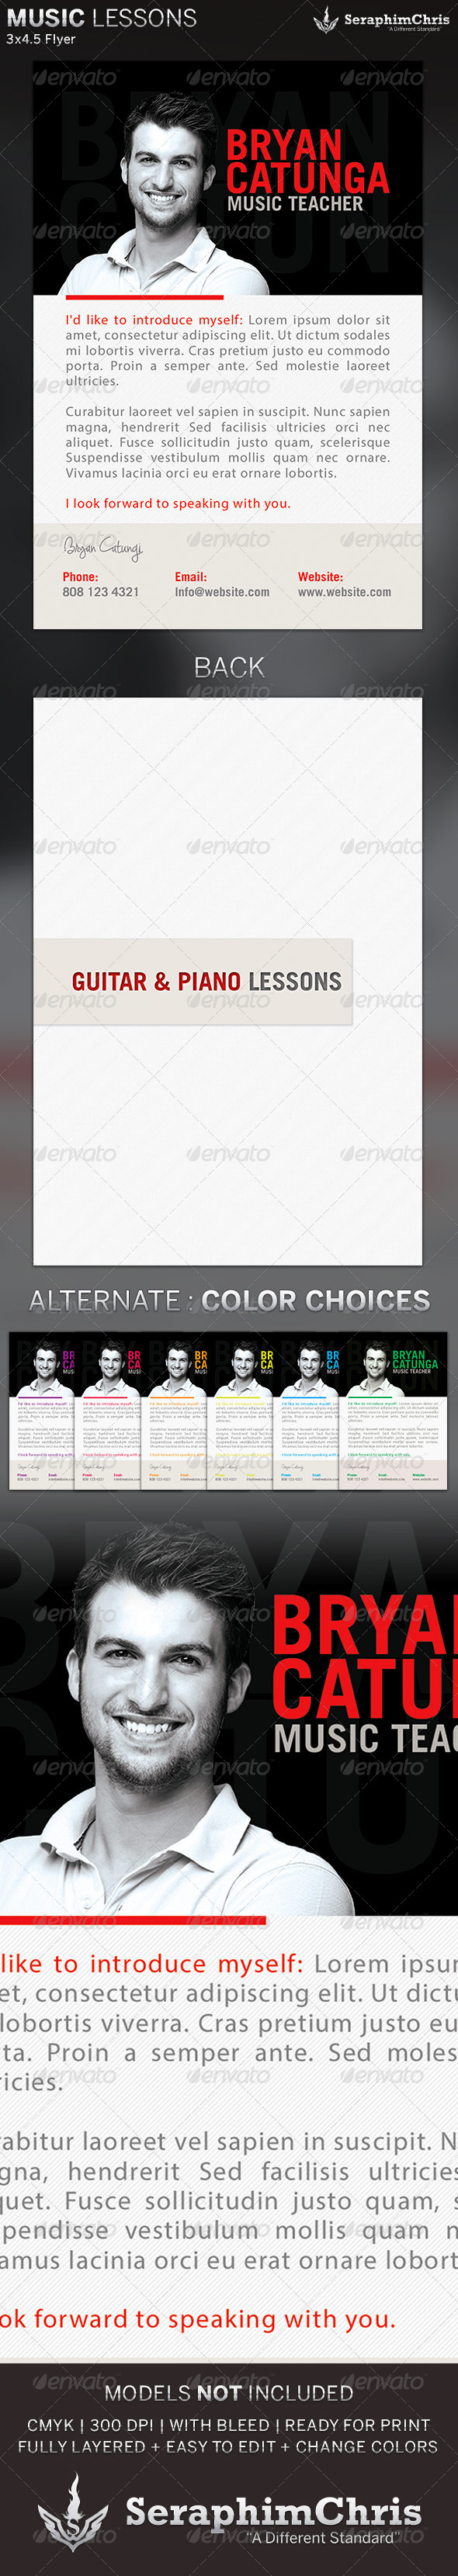 GraphicRiver Music Lessons Flyer Template 5360099